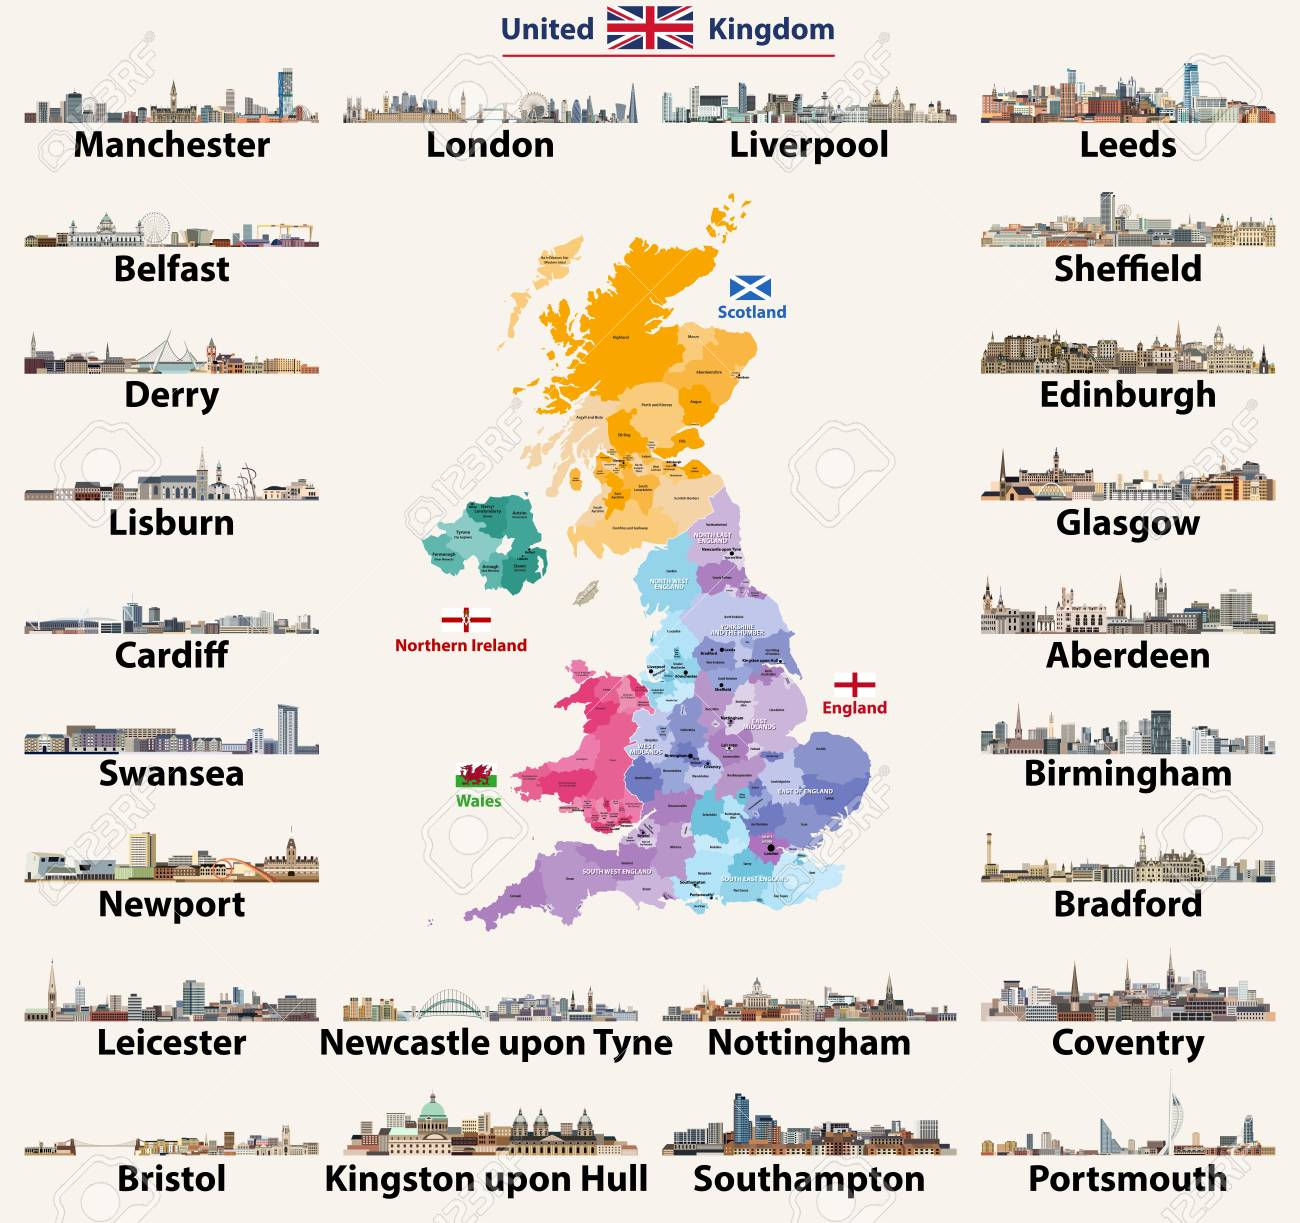 Map Of Uk And Ireland With Cities.United Kingdom Cities Skylines Detailed Map Of United Kingdom